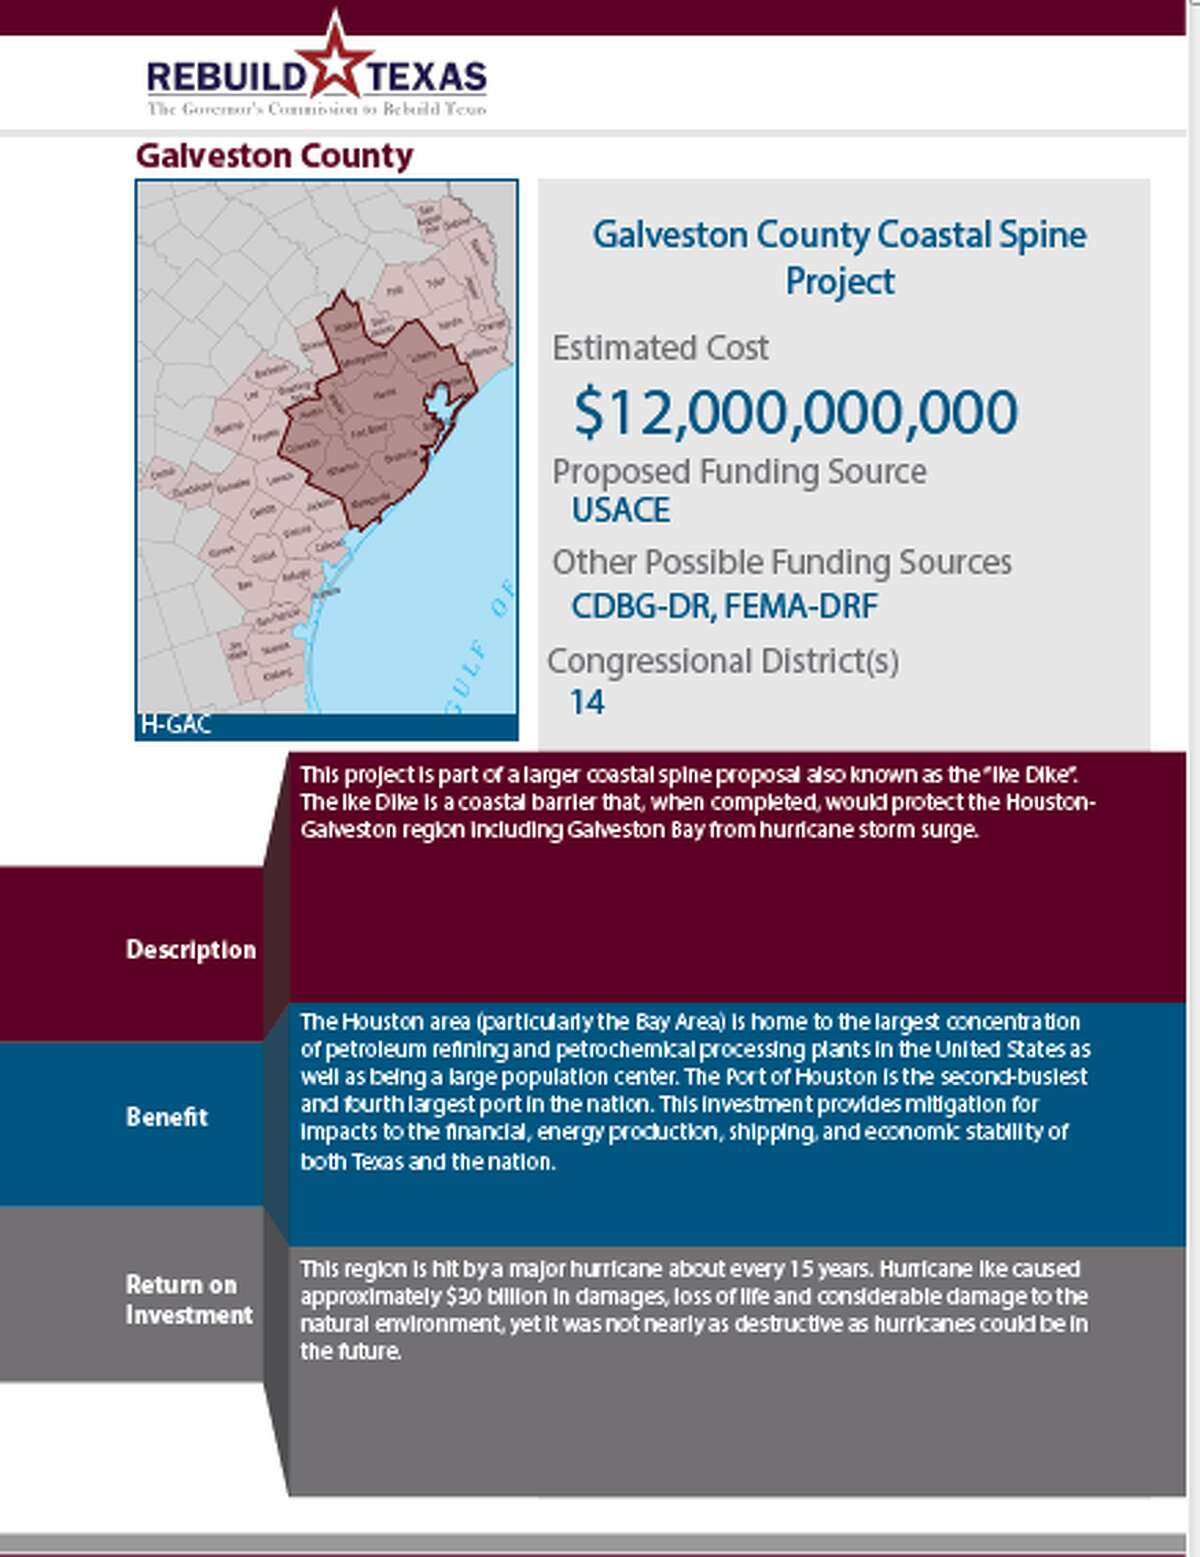 """Texas asked for $12 billion for the Galveston County Coastal Spine project, part of the so-called """"Ike Duke."""" The federal government on July 5, 2018 announced $3.9 billion in funding for the coastal barrier."""